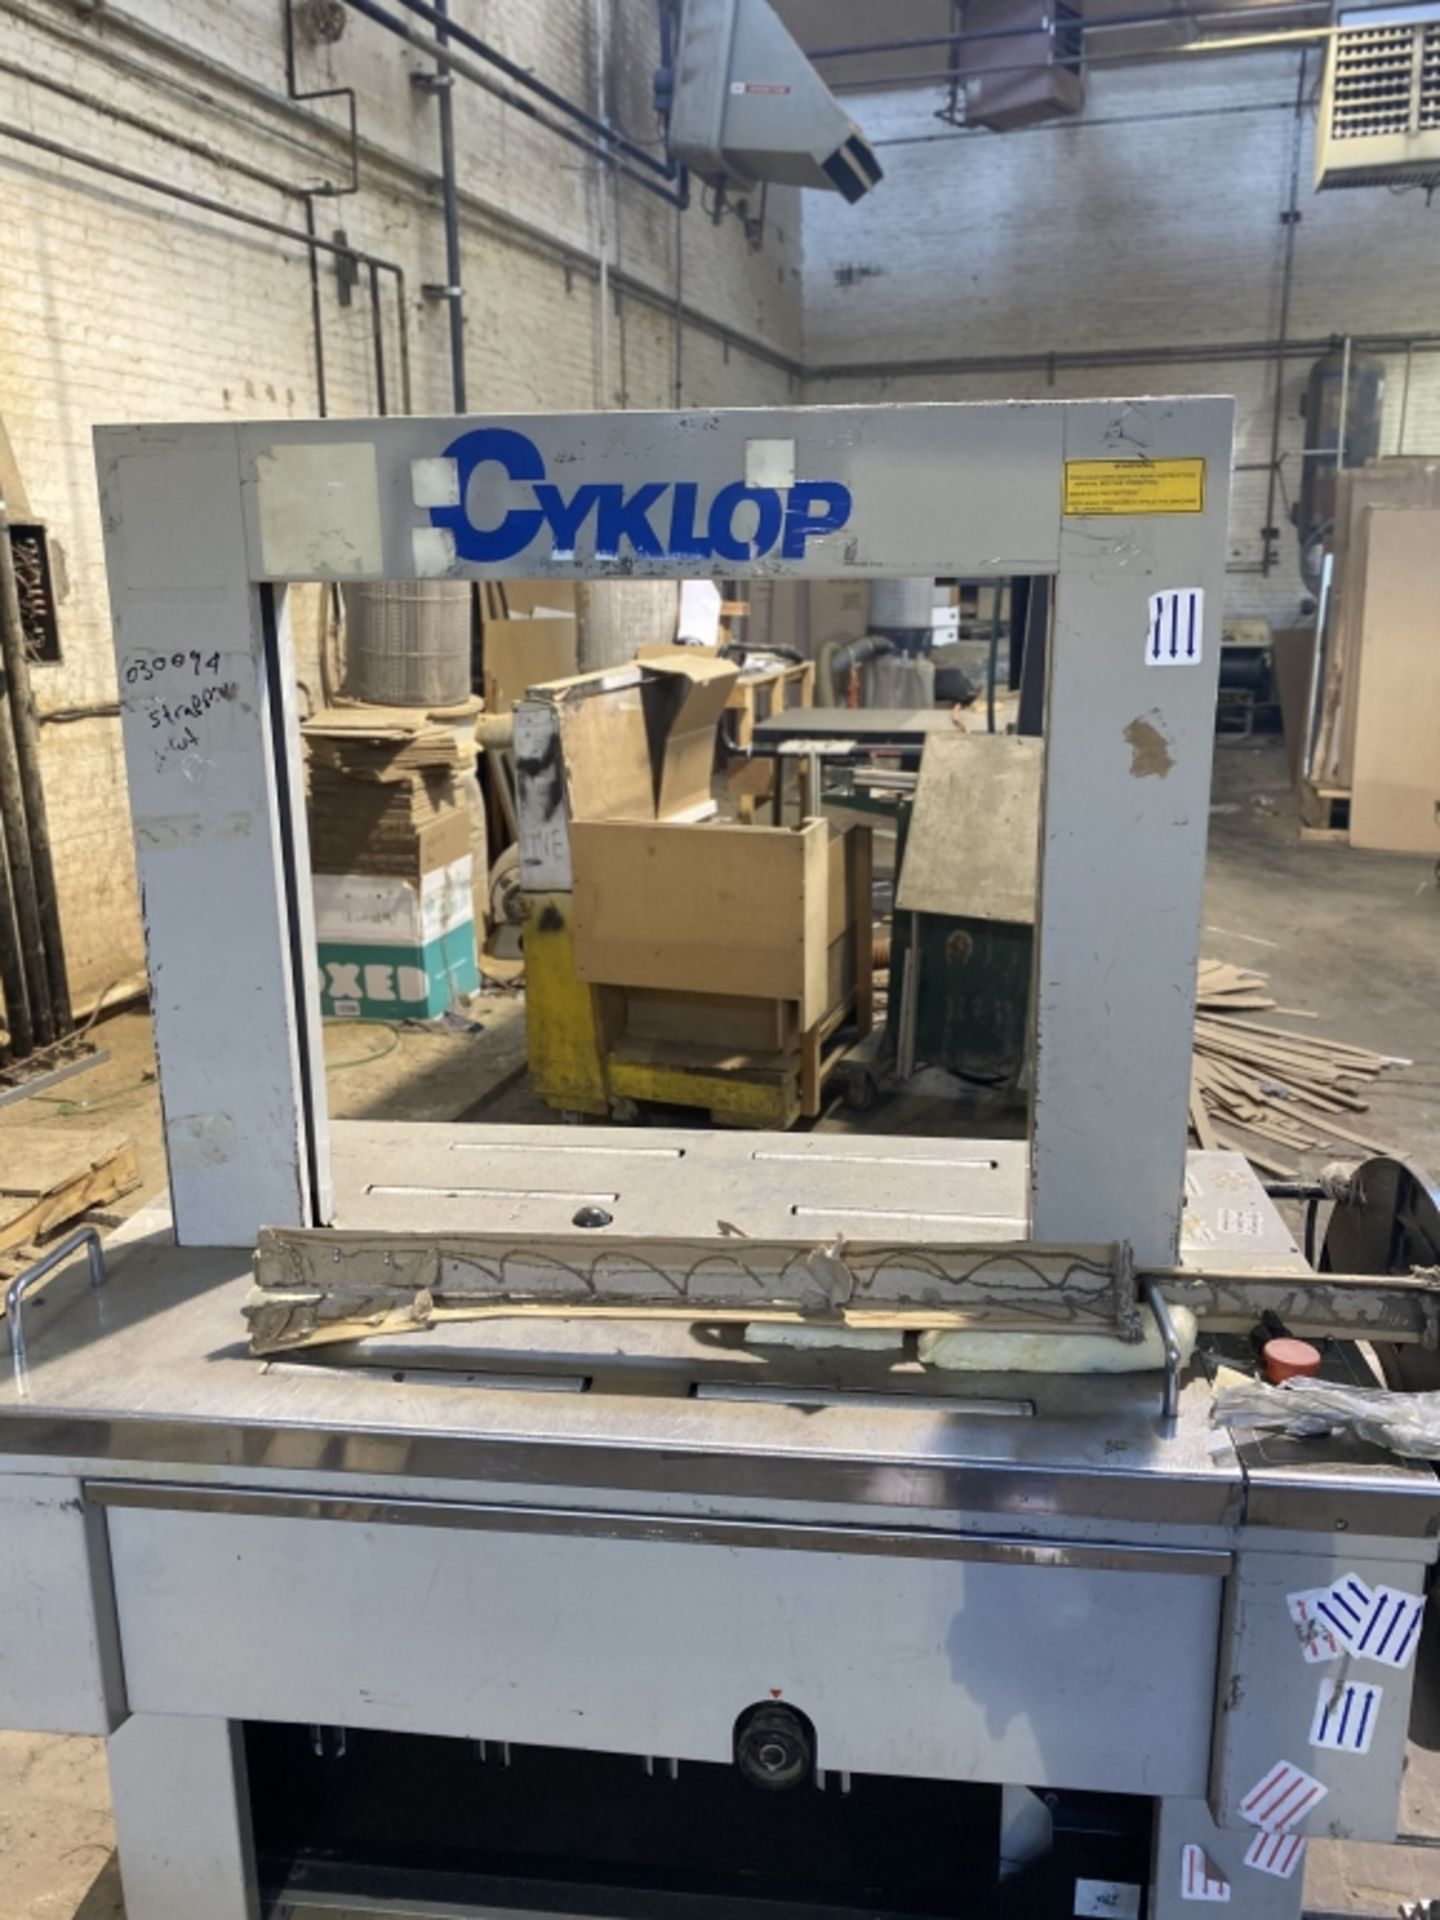 Lot 1019 - 2000 Cyklop Strapping Machine